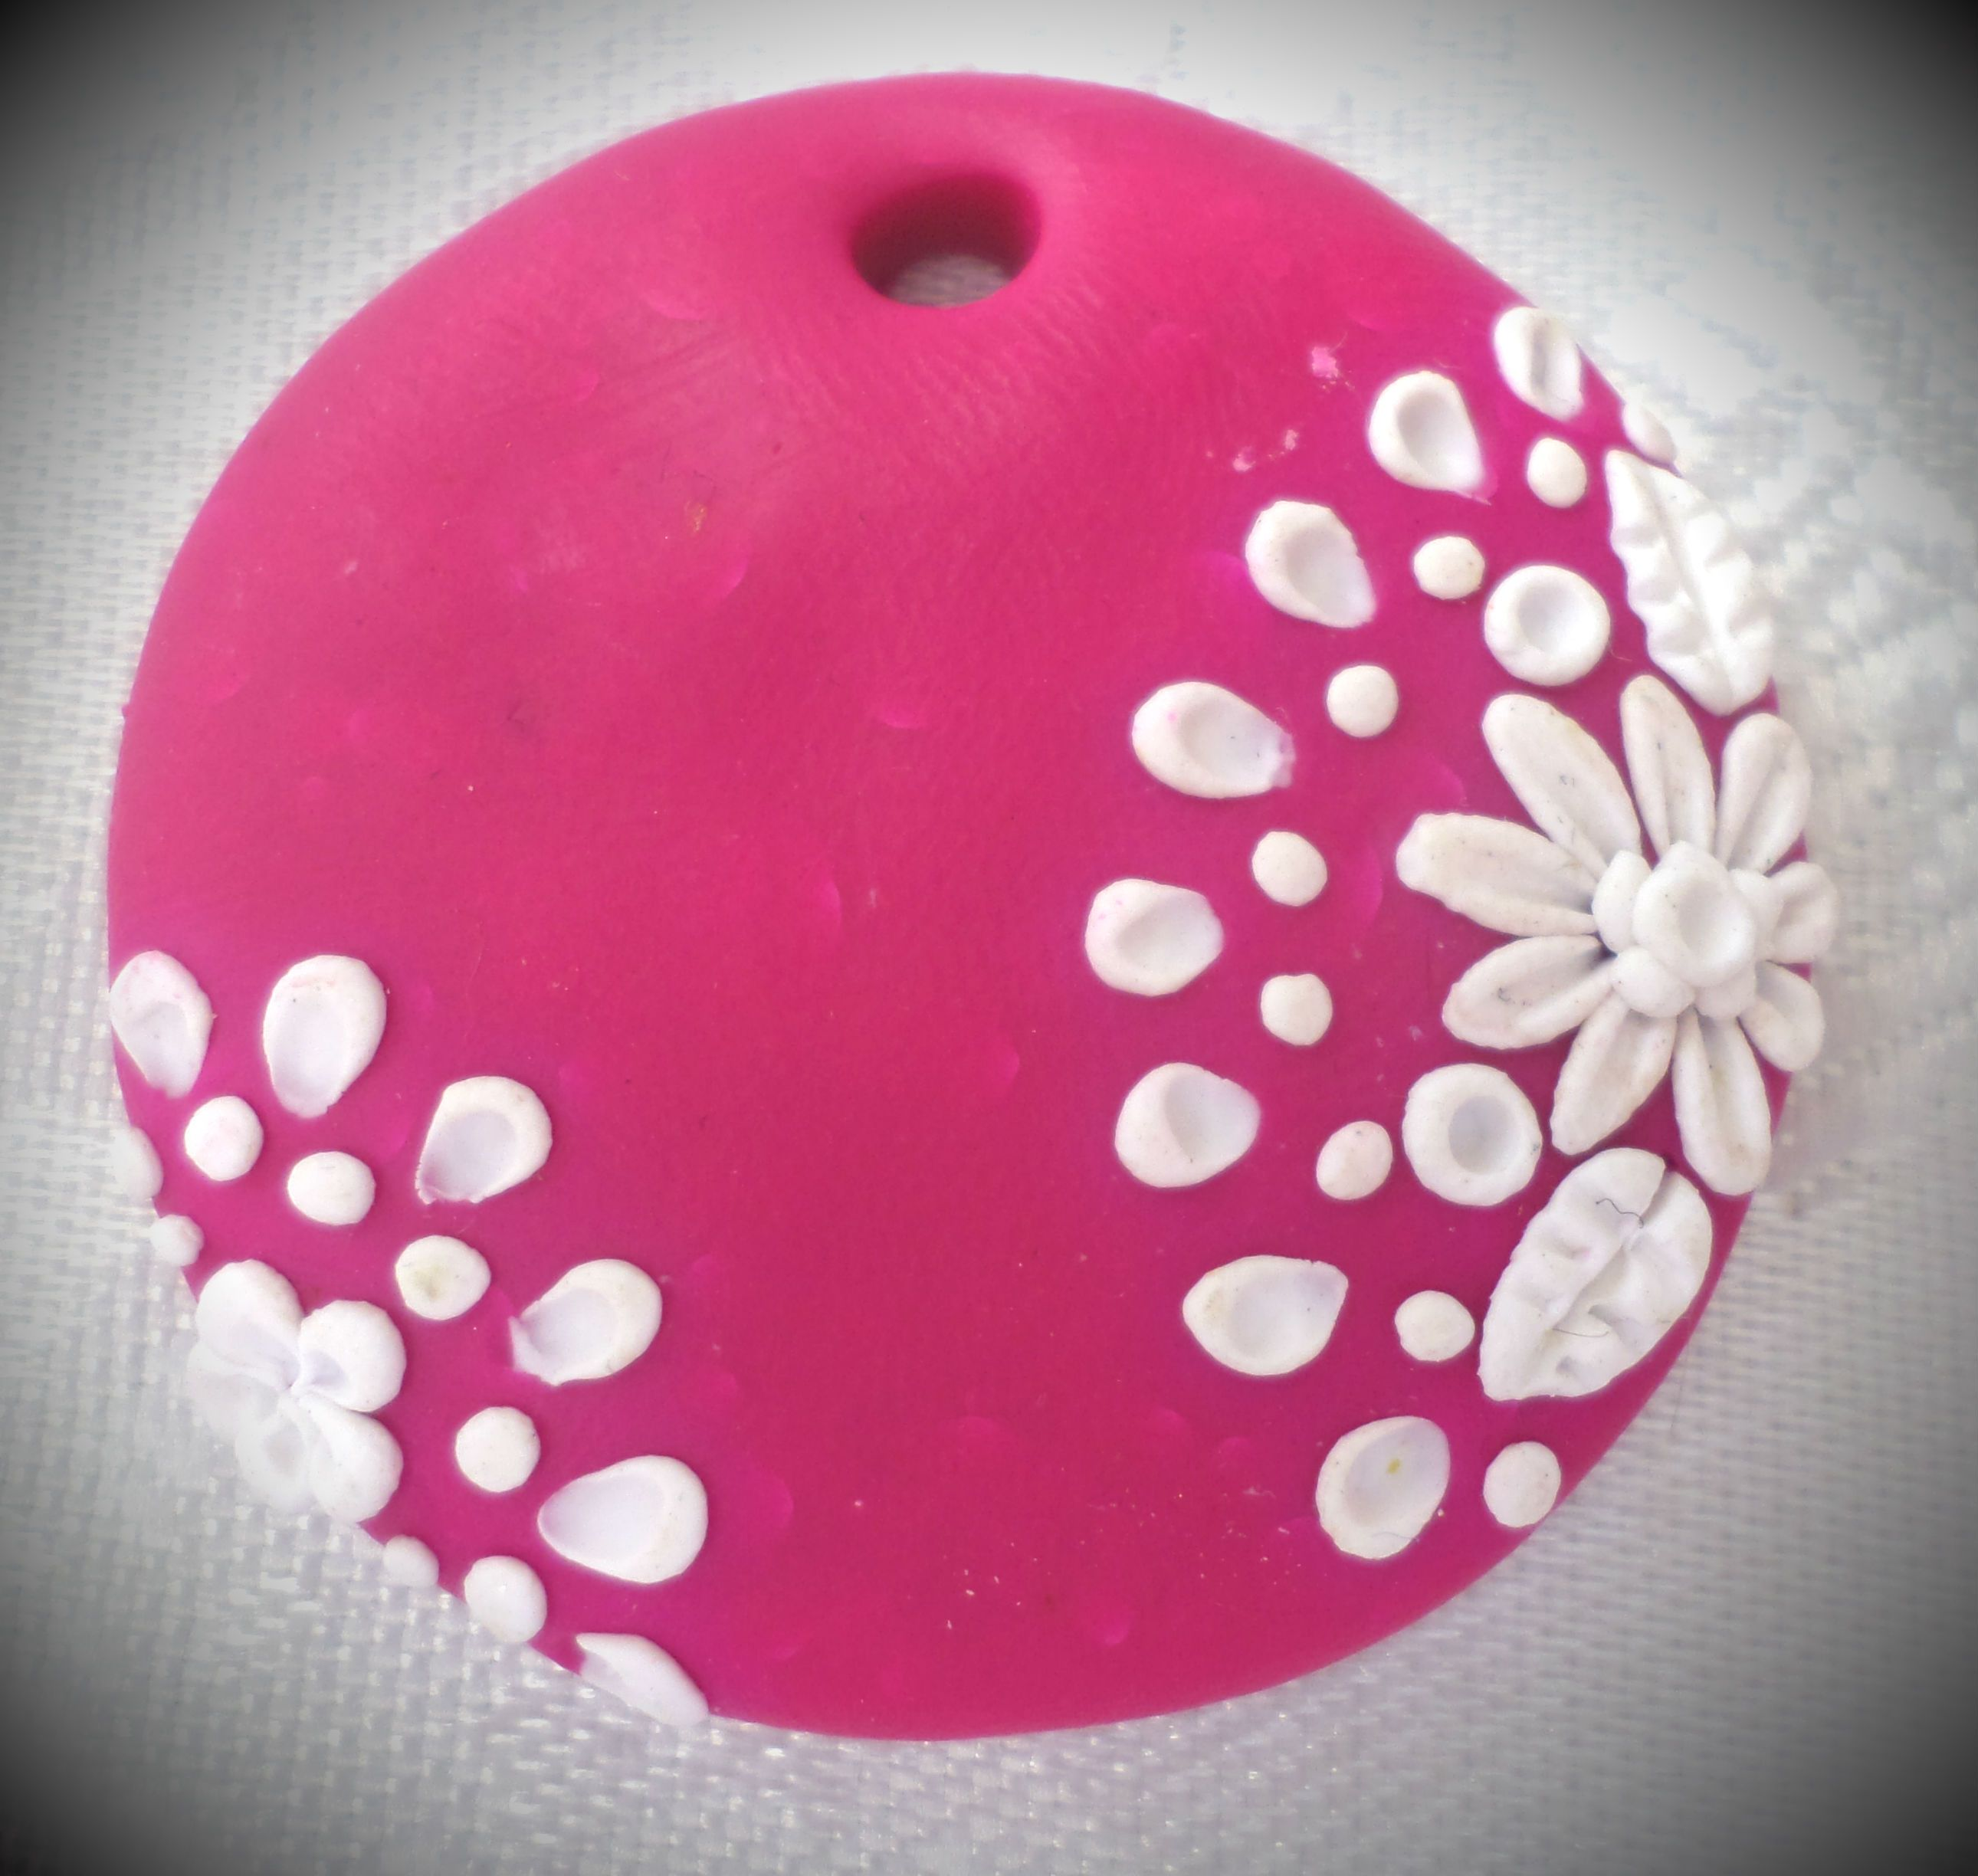 Polymer clay pendant, handmade with applique technique, one of a kind. Vibrant pink with lacy white flowers, leaves and dots. By Lis Shteindel.